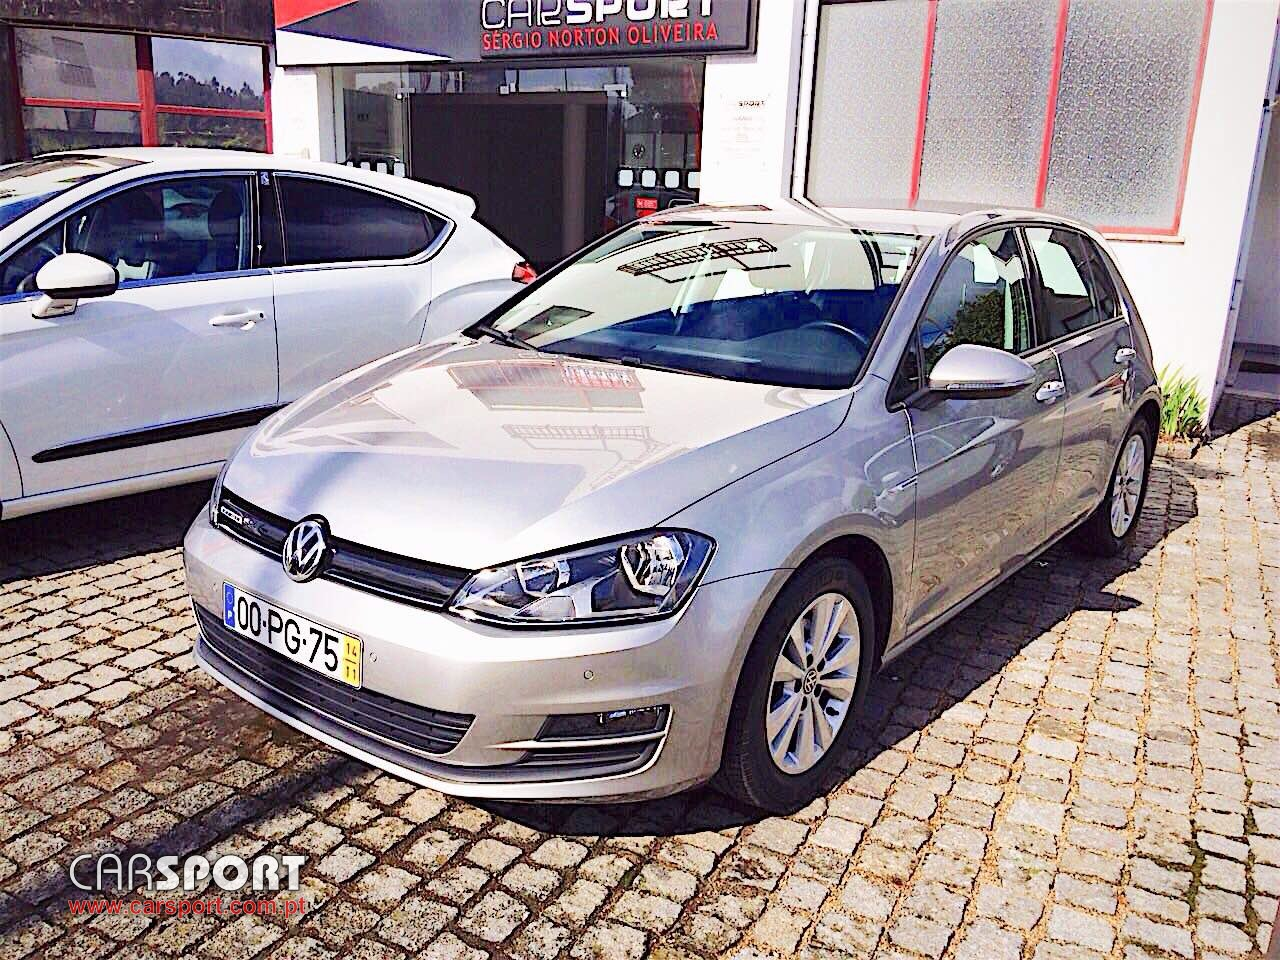 volkswagen golf vii 1 6 tdi 110 cv conforline bluemotion utilit rio stand carsport. Black Bedroom Furniture Sets. Home Design Ideas